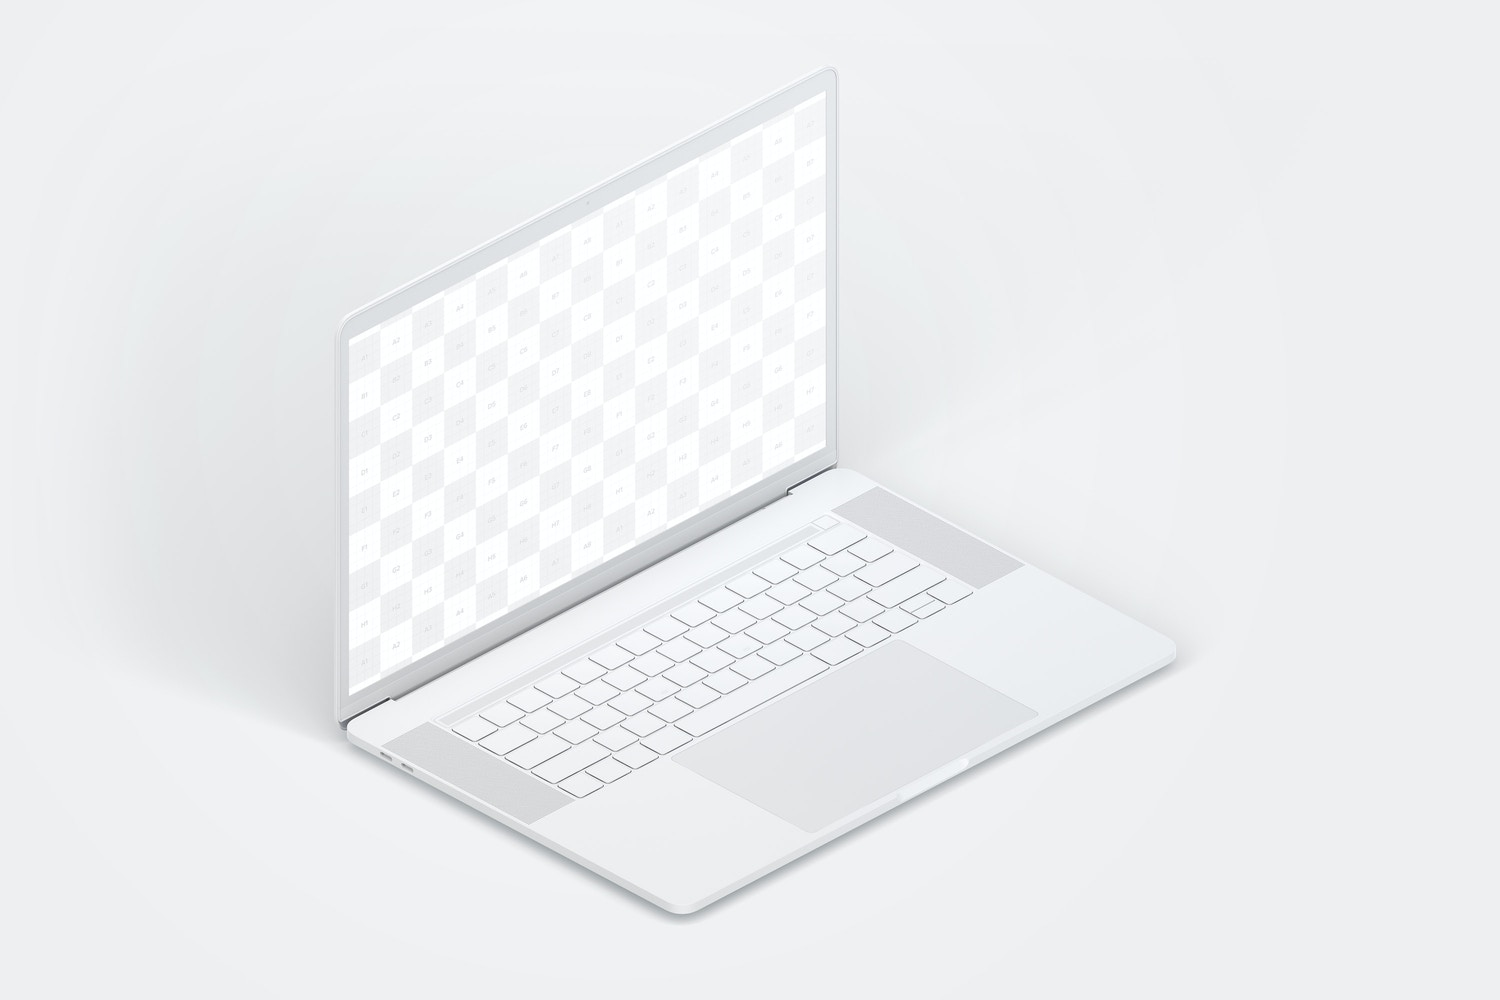 "Clay MacBook Pro 15"" with Touch Bar, Left Isometric View Mockup (2) by Original Mockups on Original Mockups"